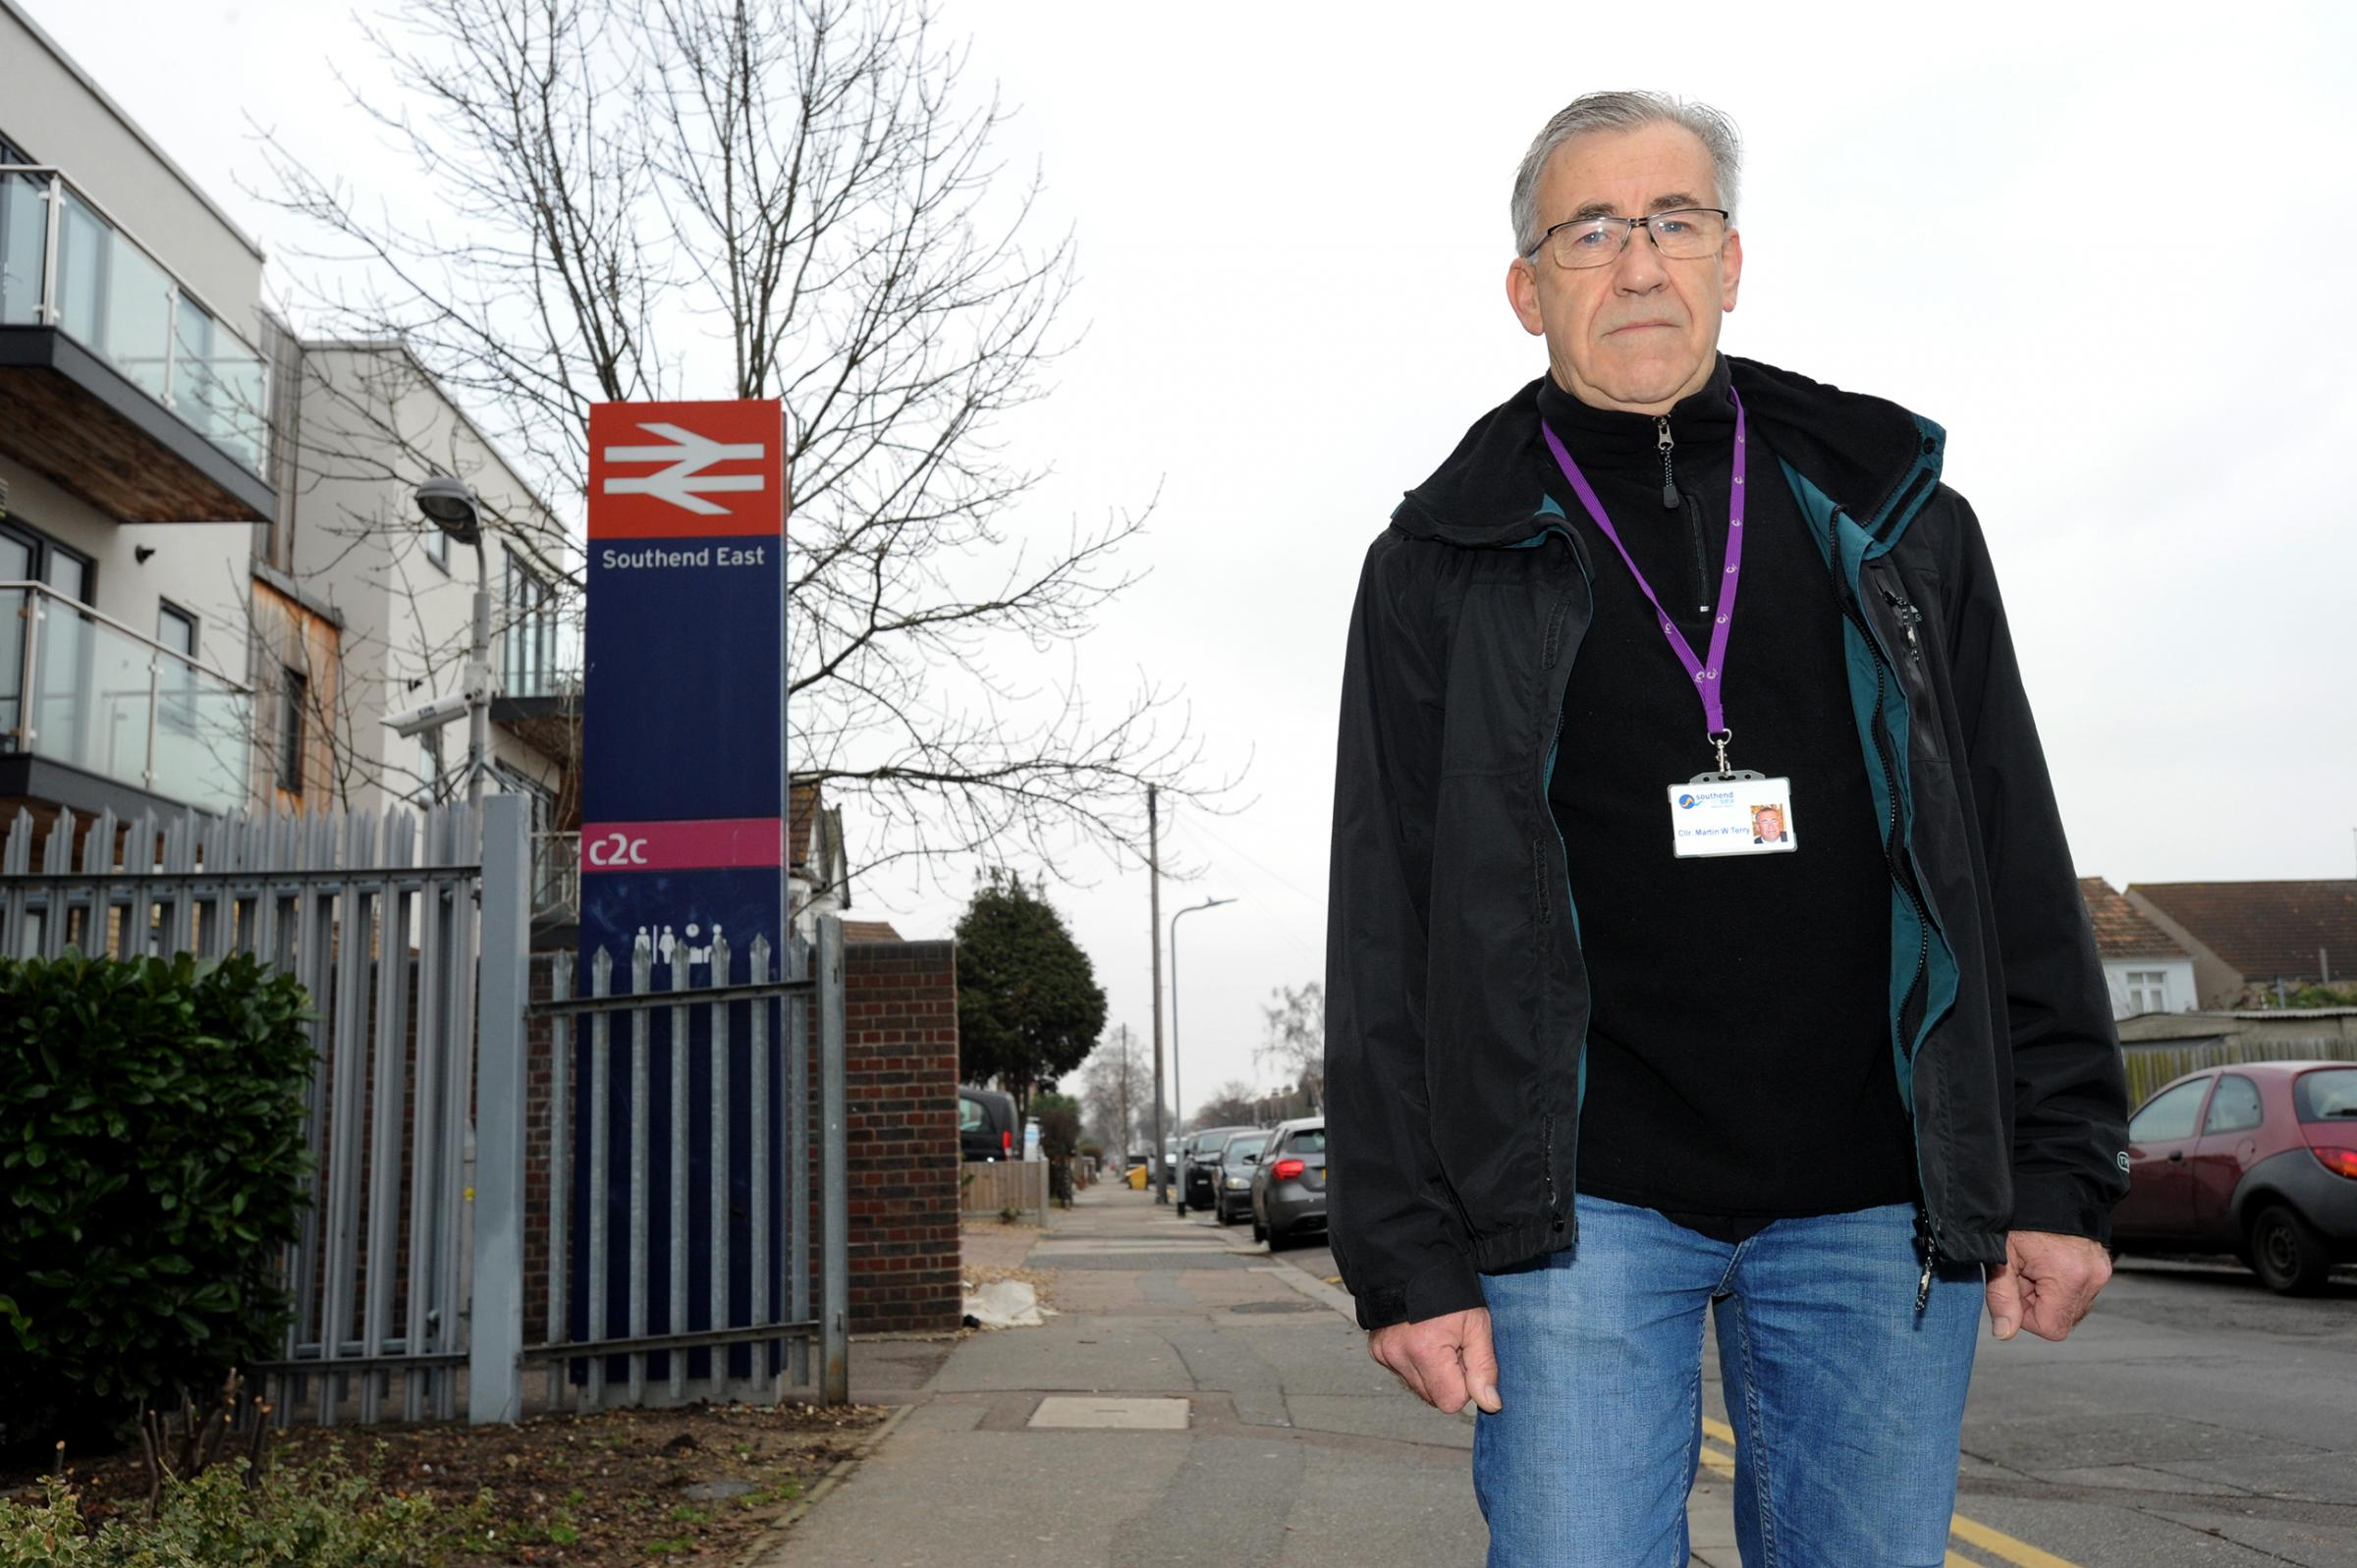 Ambleside Drive, Southchurch. Independent Councillor Martin Terry wants CCTV camera coverage near Southed East station to combat a series of muggings and drug dealing in the area. Picture Steve O'Connell 13-01-17.